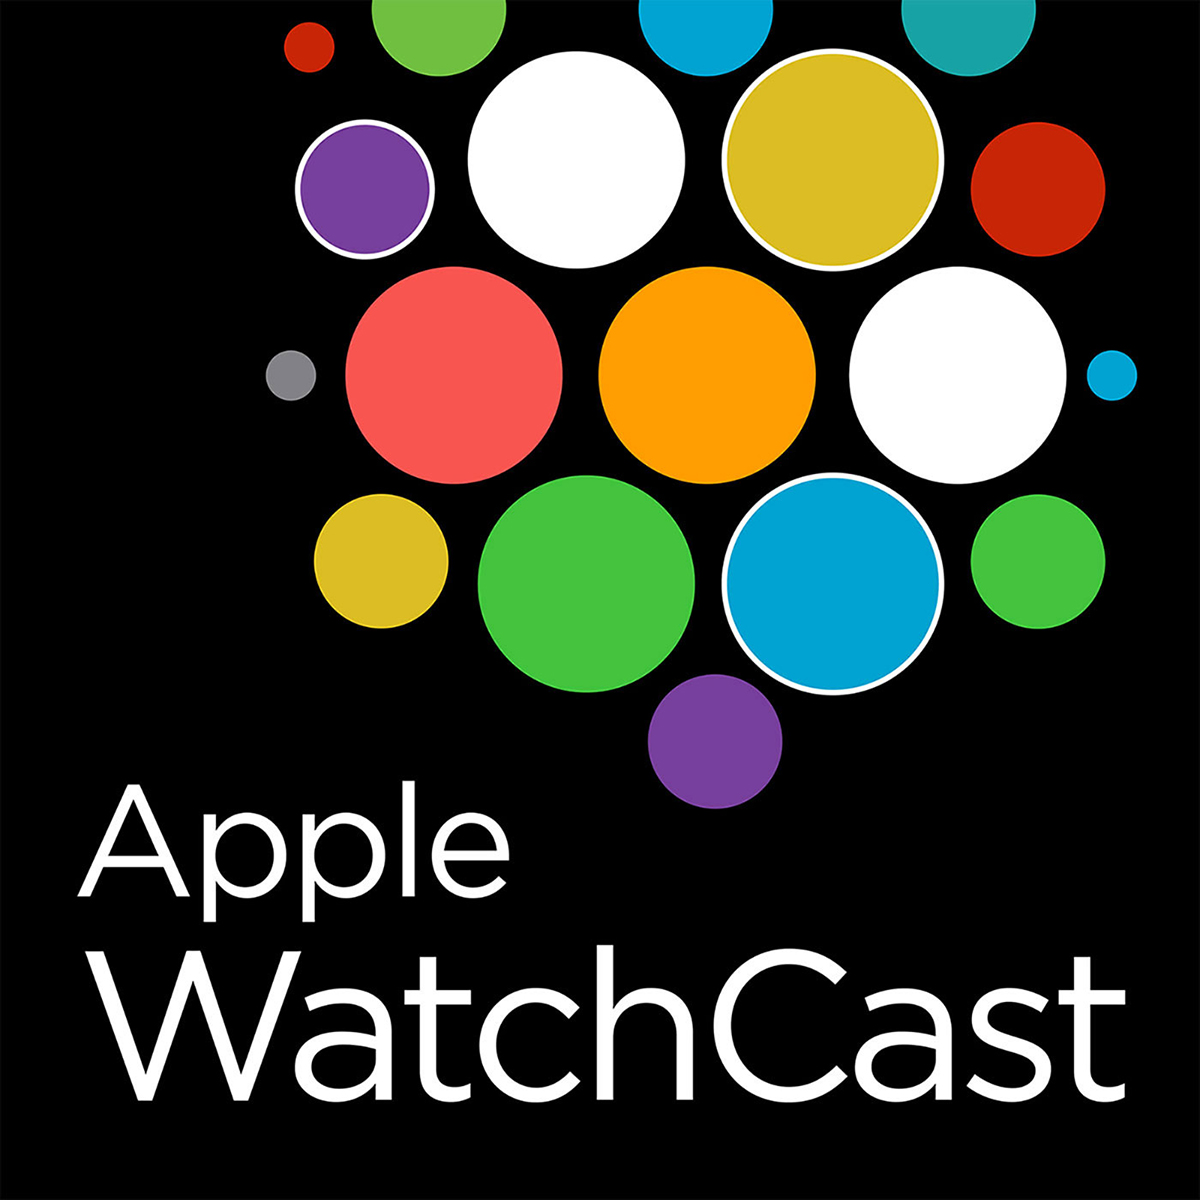 AWC Episode 264 - The 2018 Apple WatchCast Awards